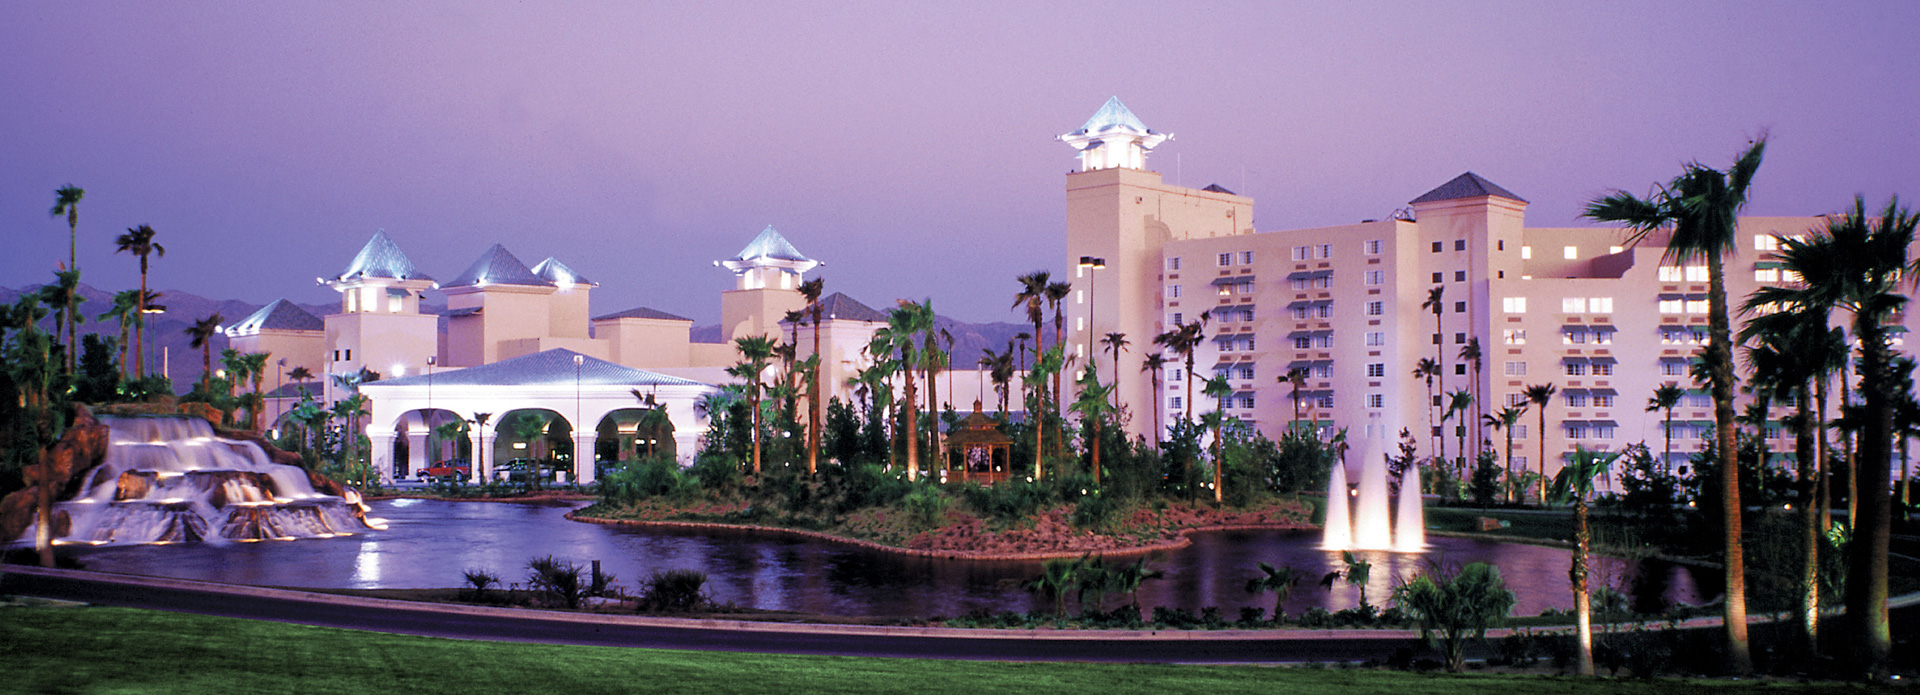 Mesquite Hotels And Casinos